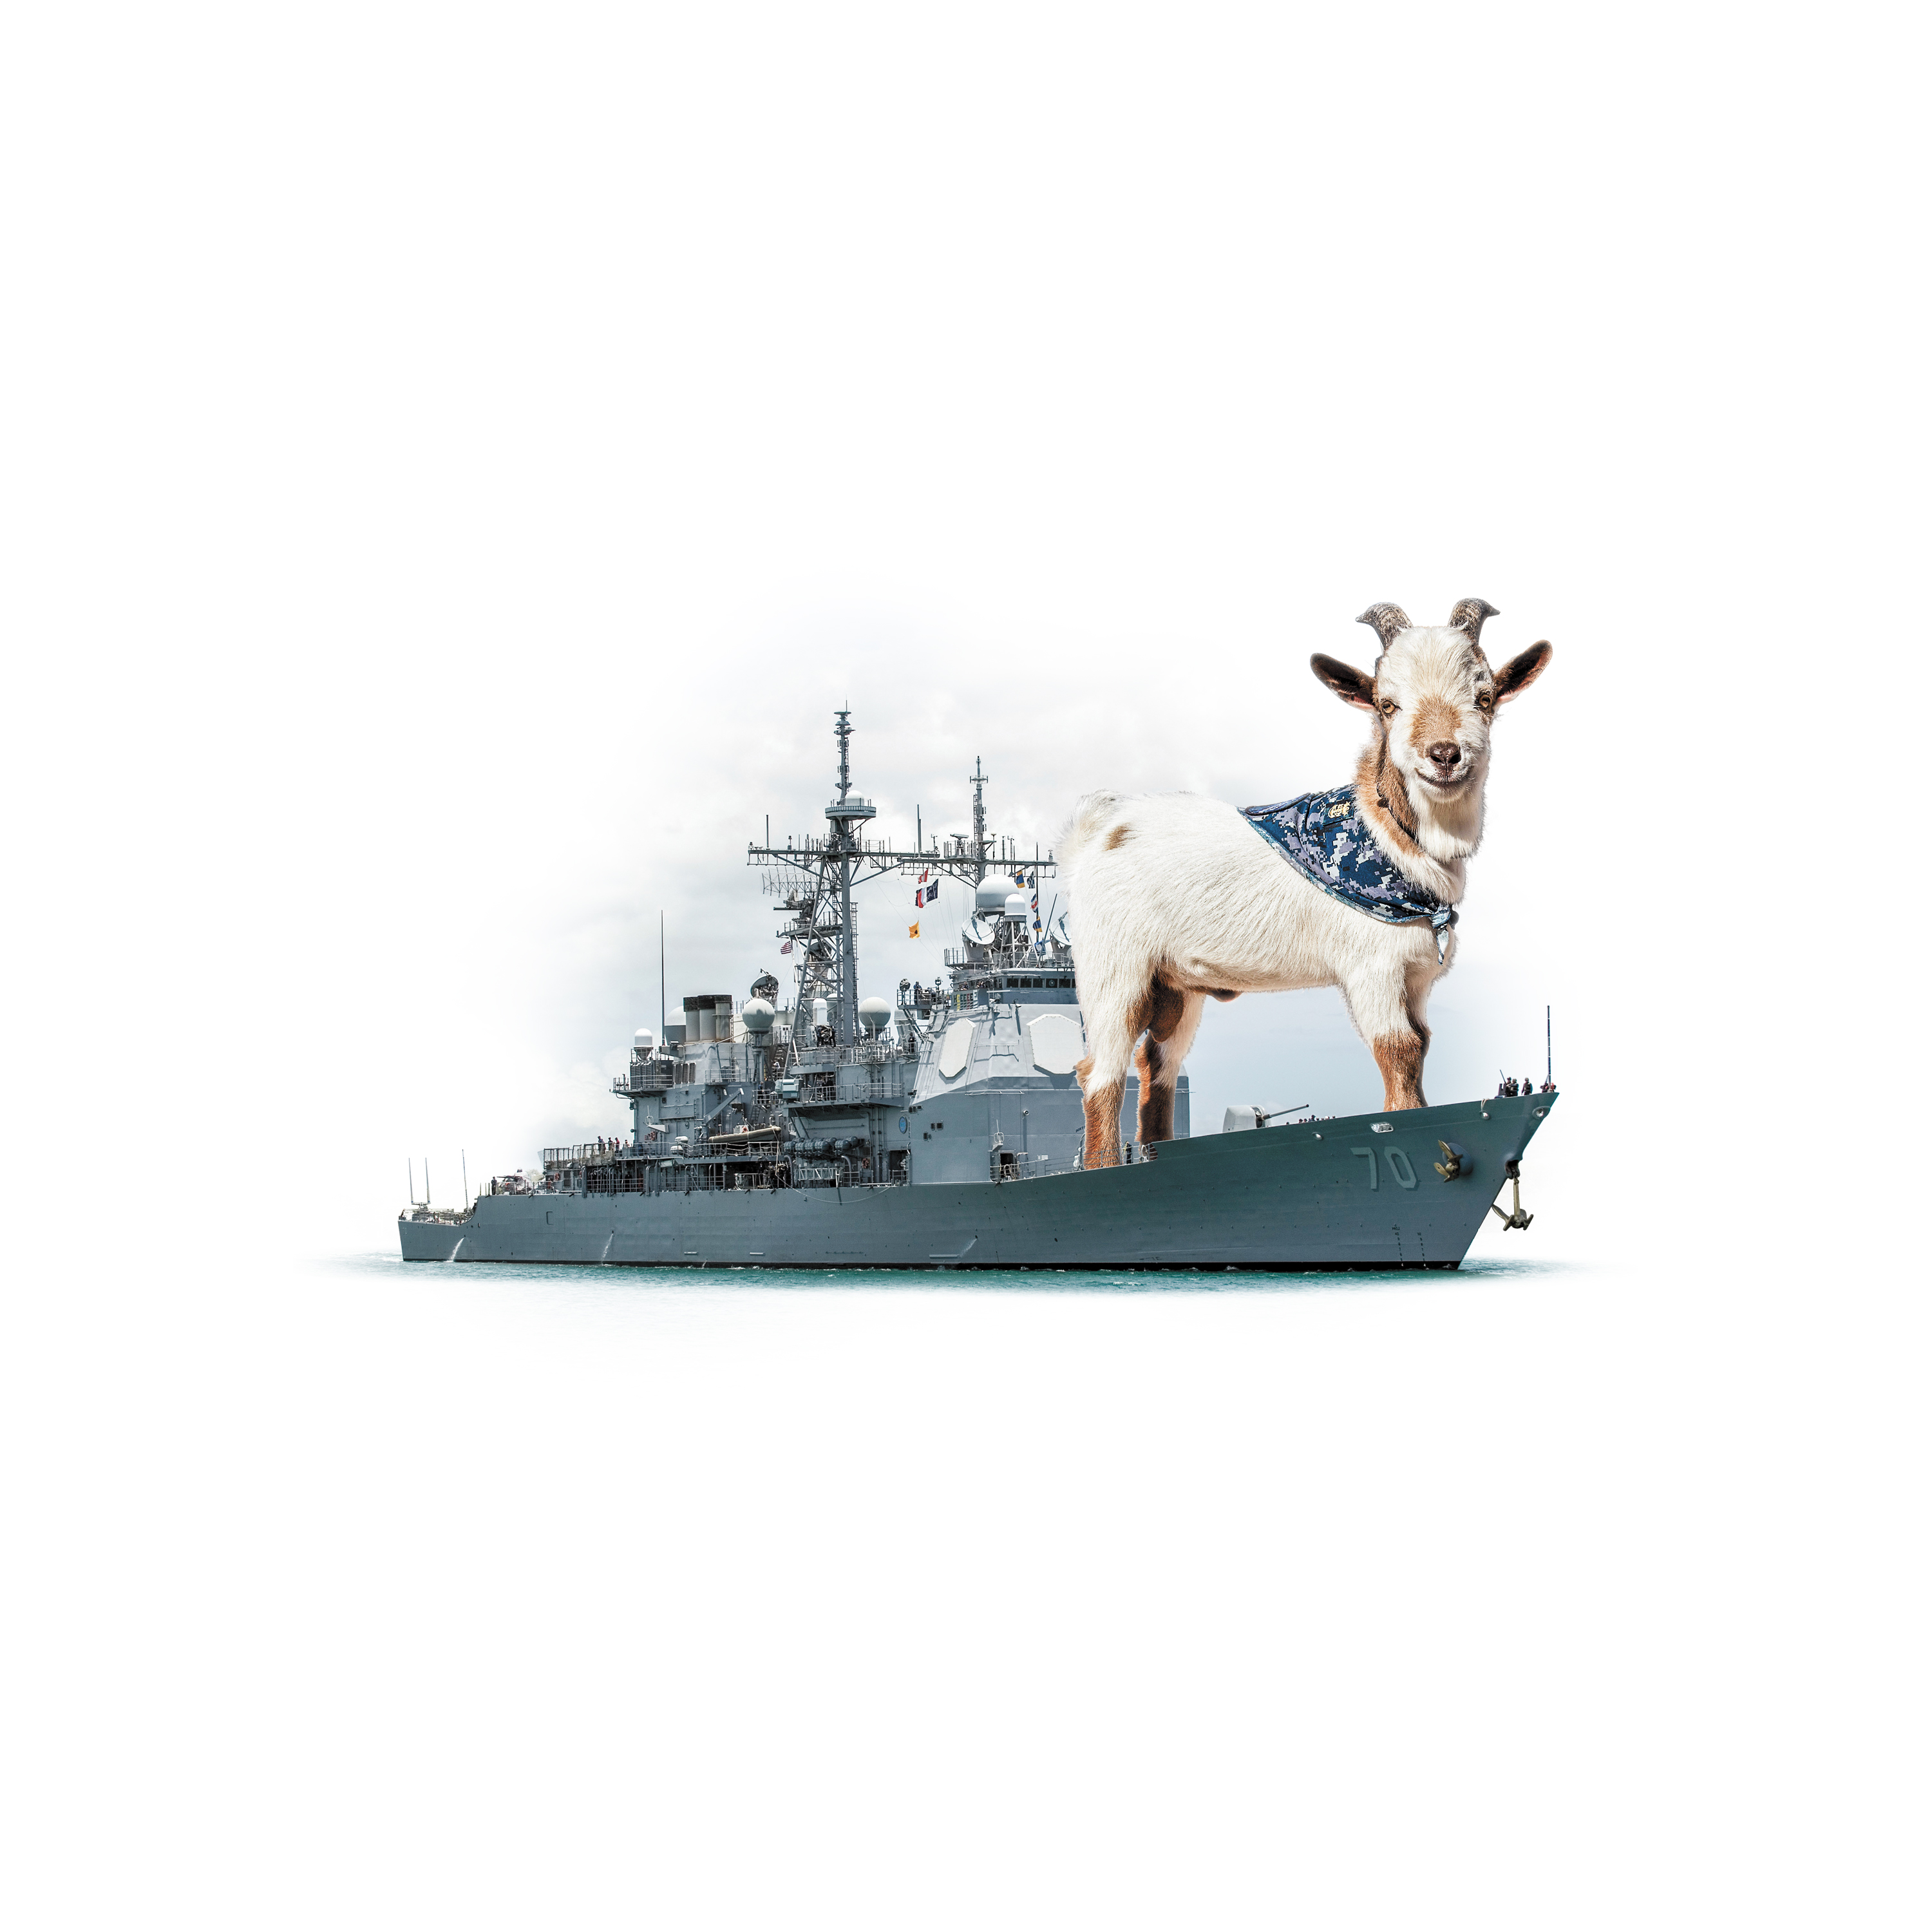 report long hours a nosy co a pet goat aboard cruiser lake erie